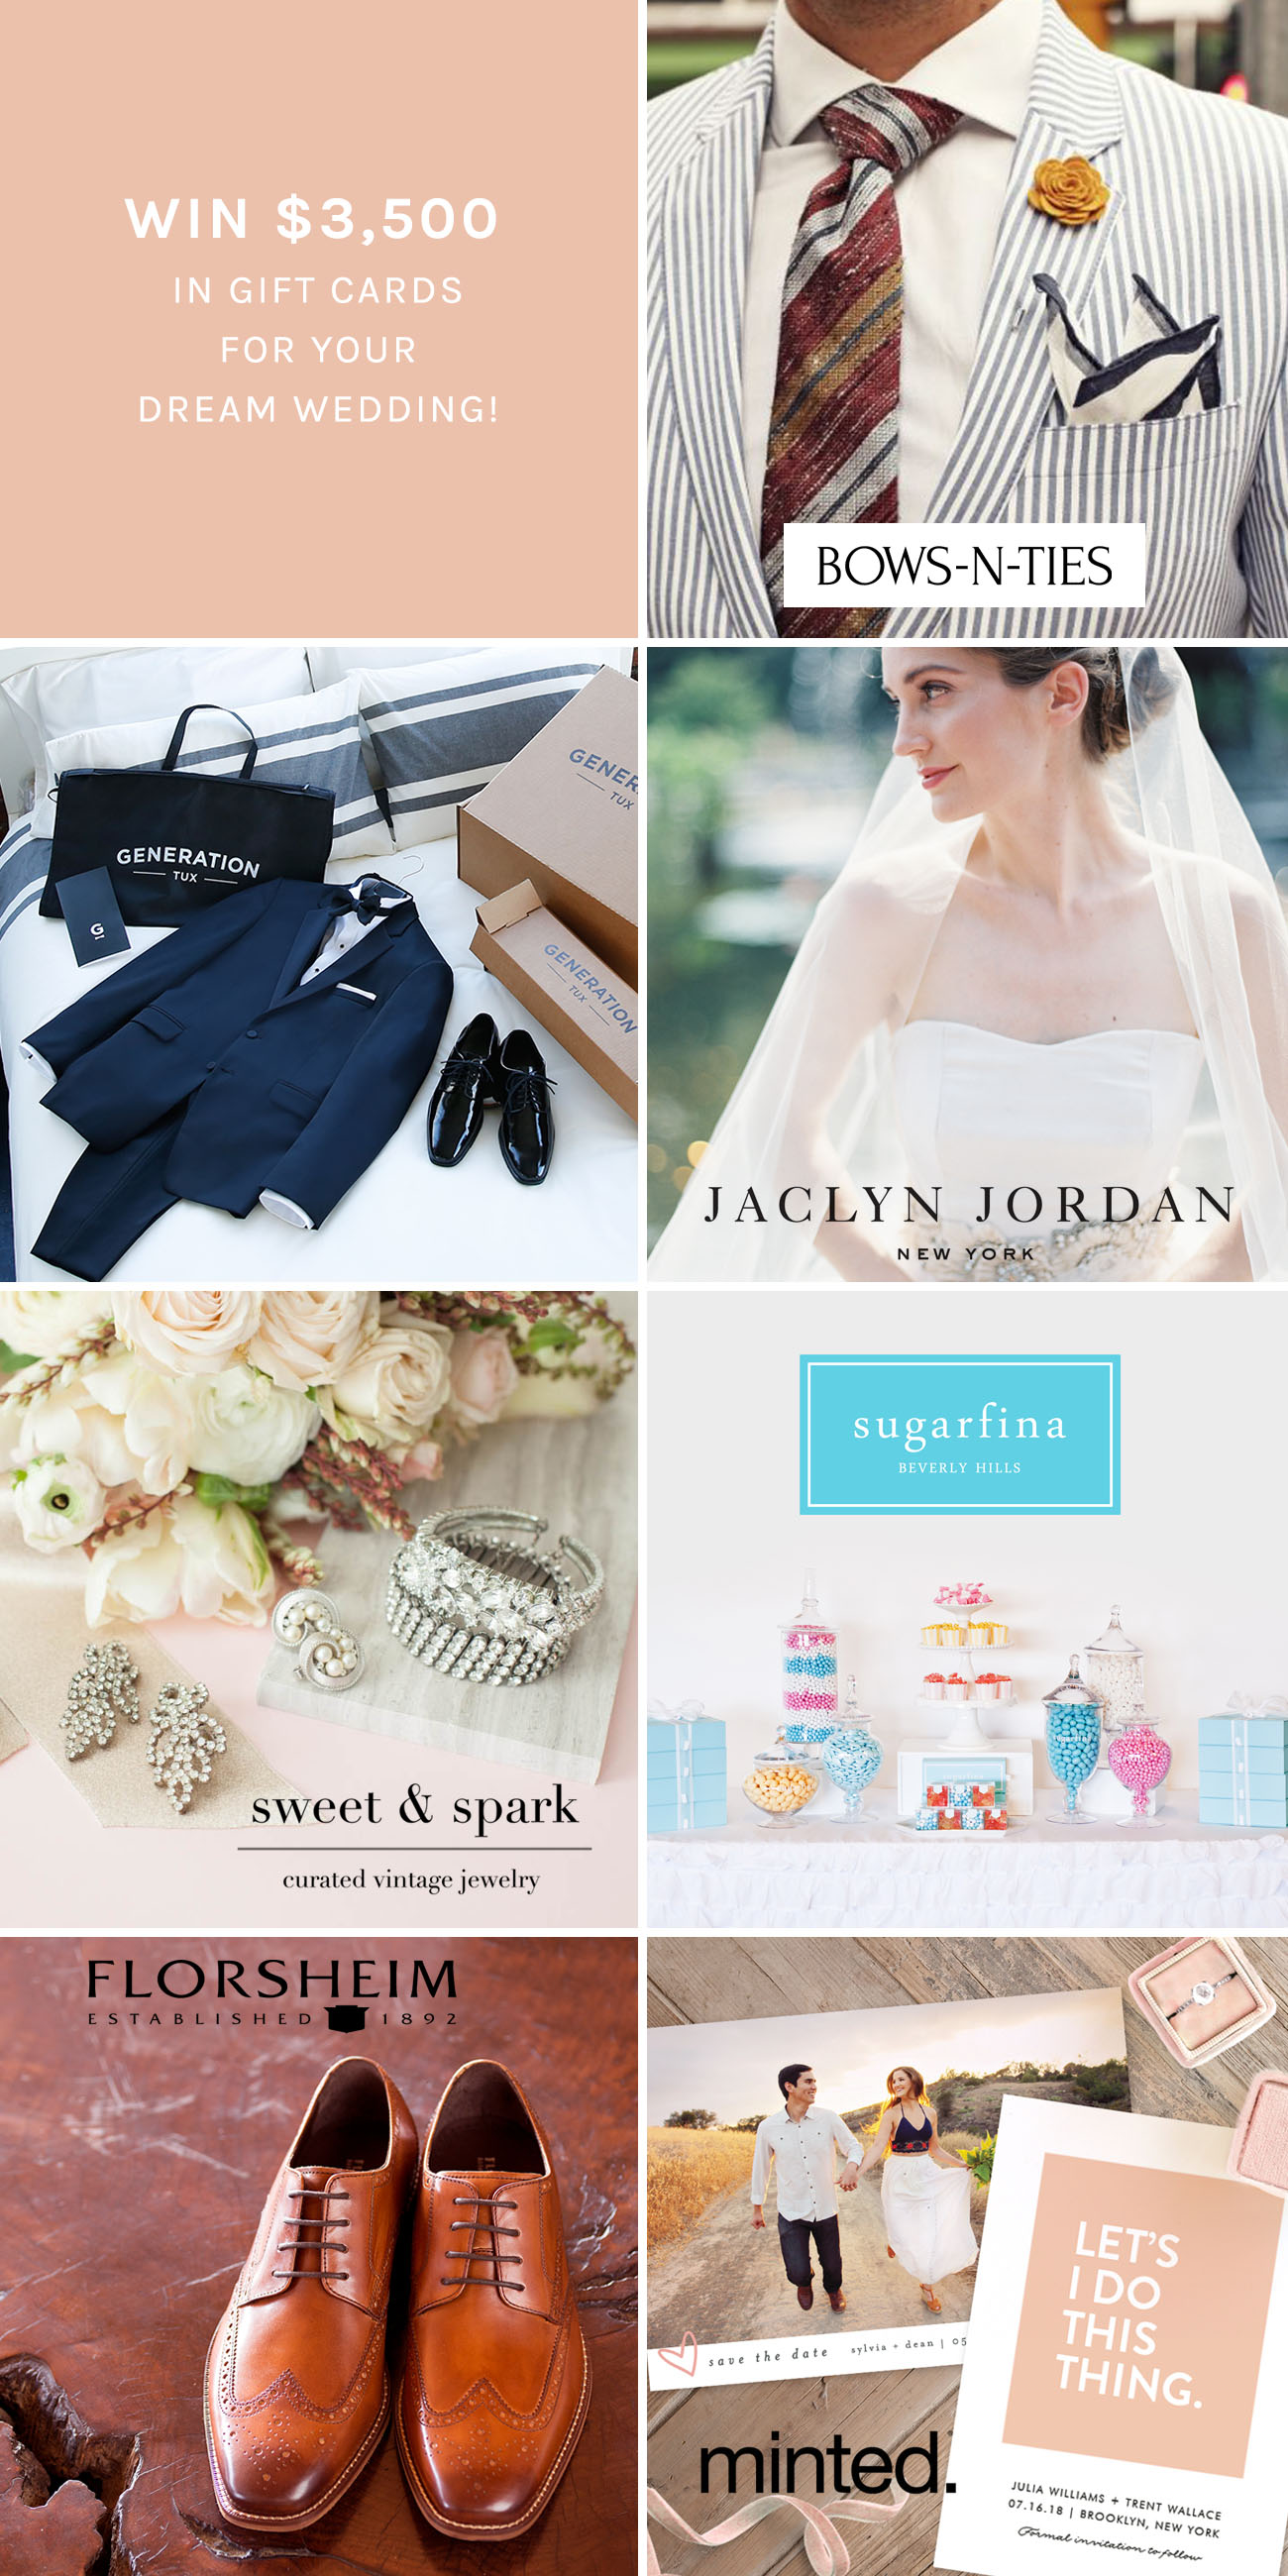 Win $3500 in Gift Cards for Your Dream Wedding